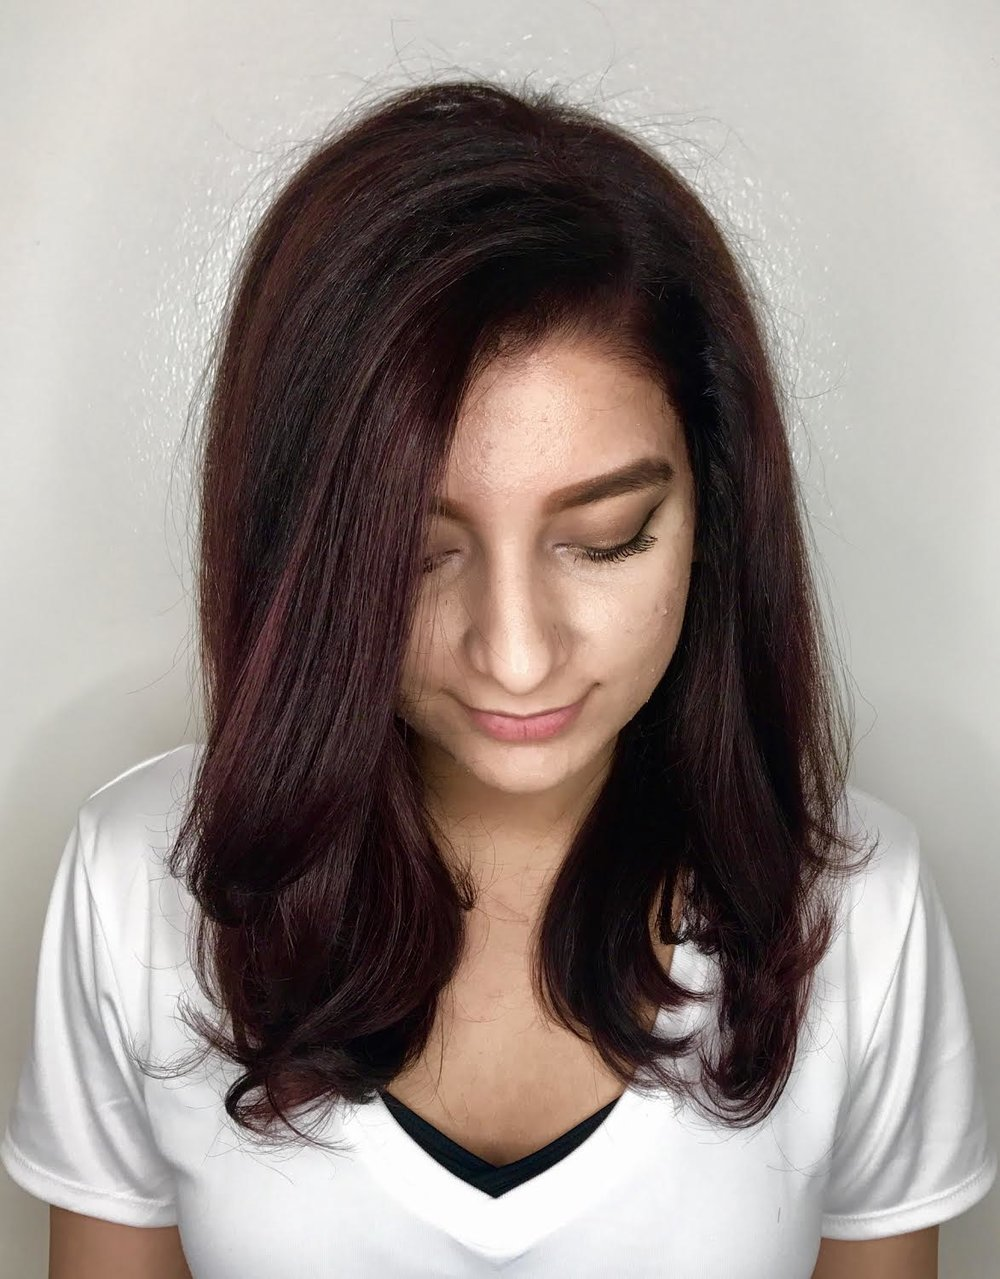 maroon hair dallas.jpg